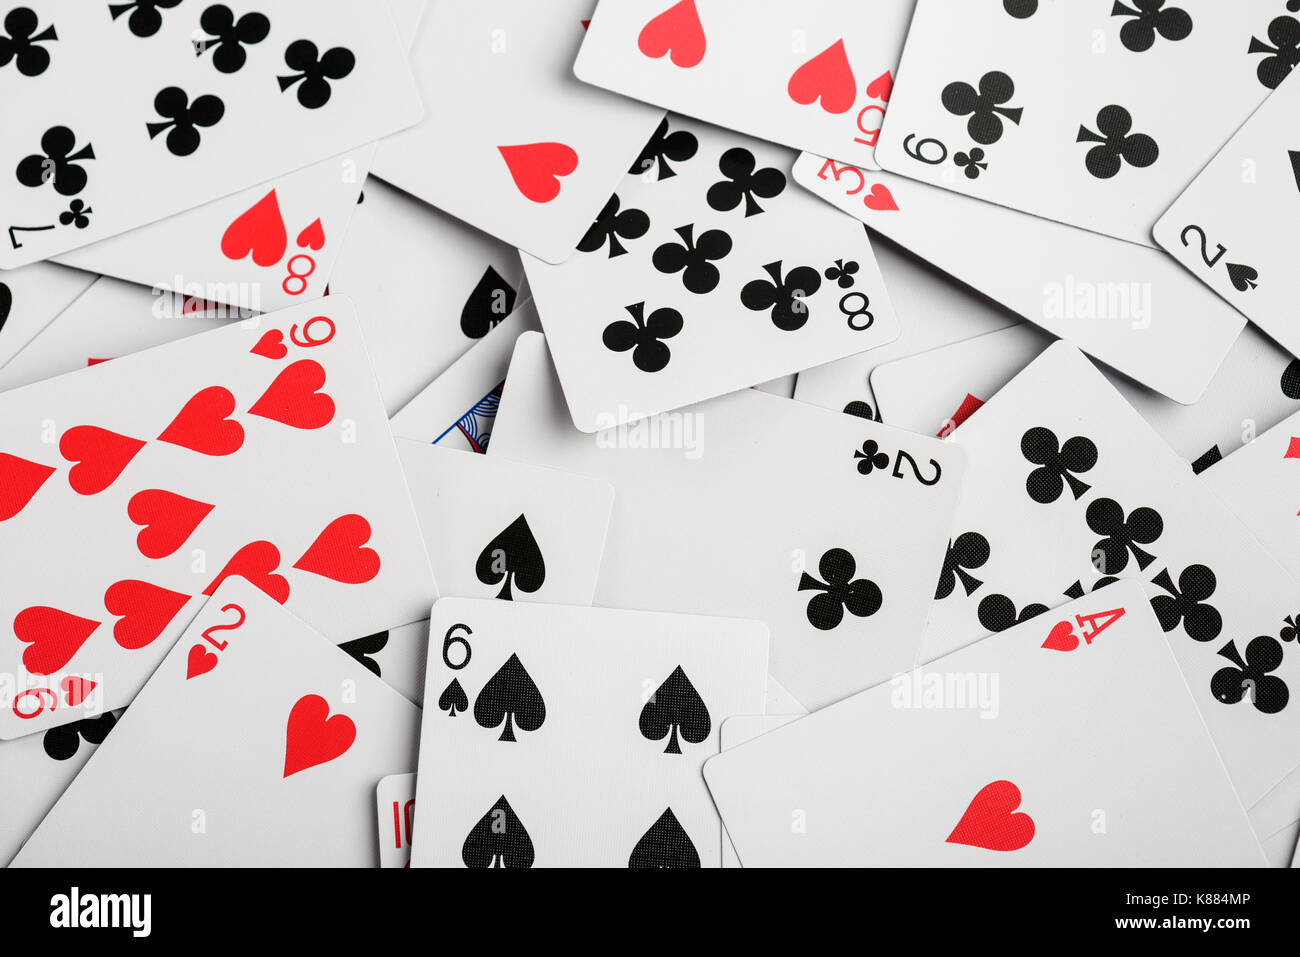 casino playing cards as background - Stock Image